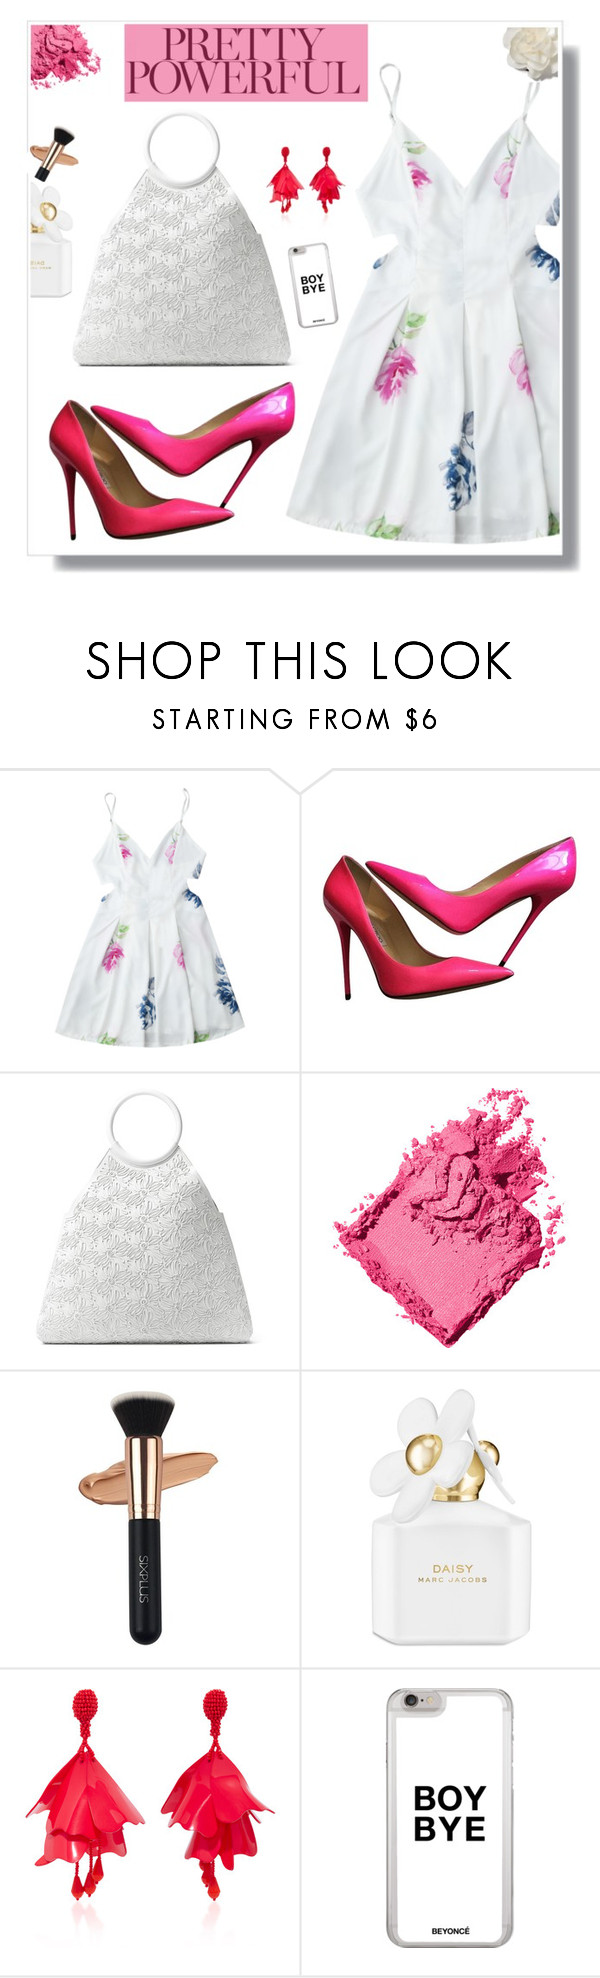 """POWERFUL PINK"" by mooncacti ❤ liked on Polyvore featuring Jimmy Choo, Michael Kors, Bobbi Brown Cosmetics, Marc Jacobs, Oscar de la Renta and Cara"